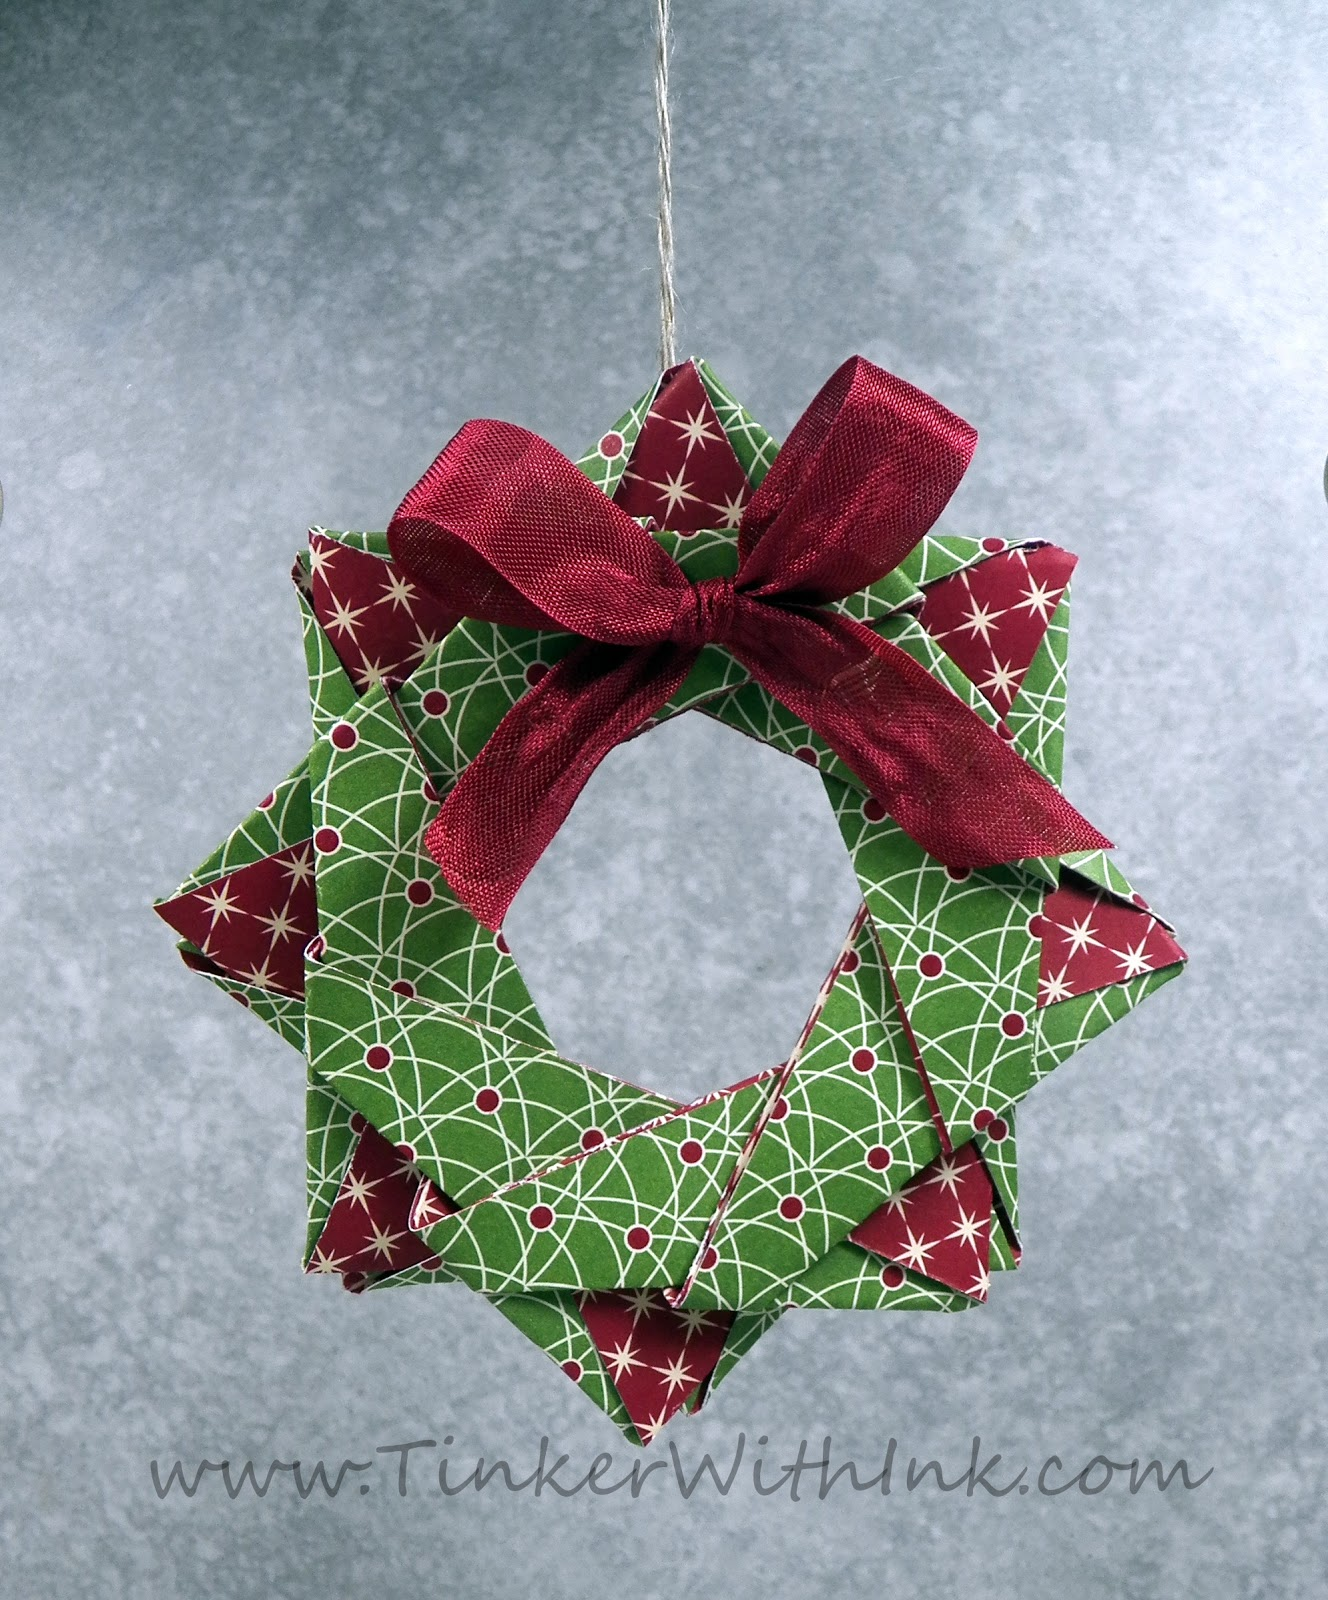 How to make an poinsettia origami amcordesign us -  How To Make An Accordion Folded Paper Wreath Chatelaine Origami Wreath Lzk Gallery